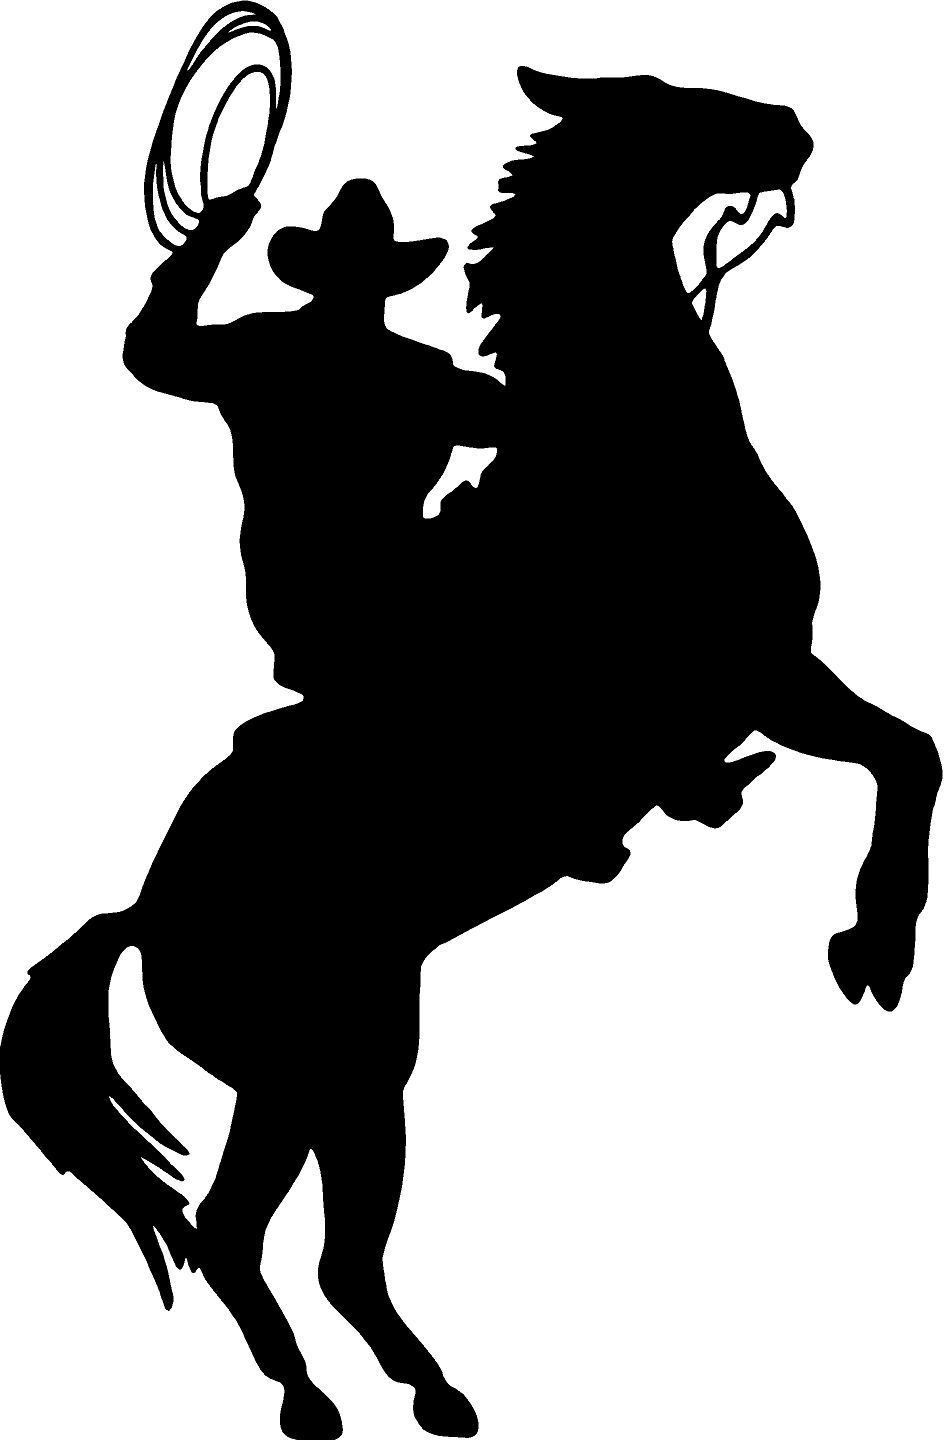 Cowboy Horse Rider Western Wall Decal Home Decor Silhouette Large